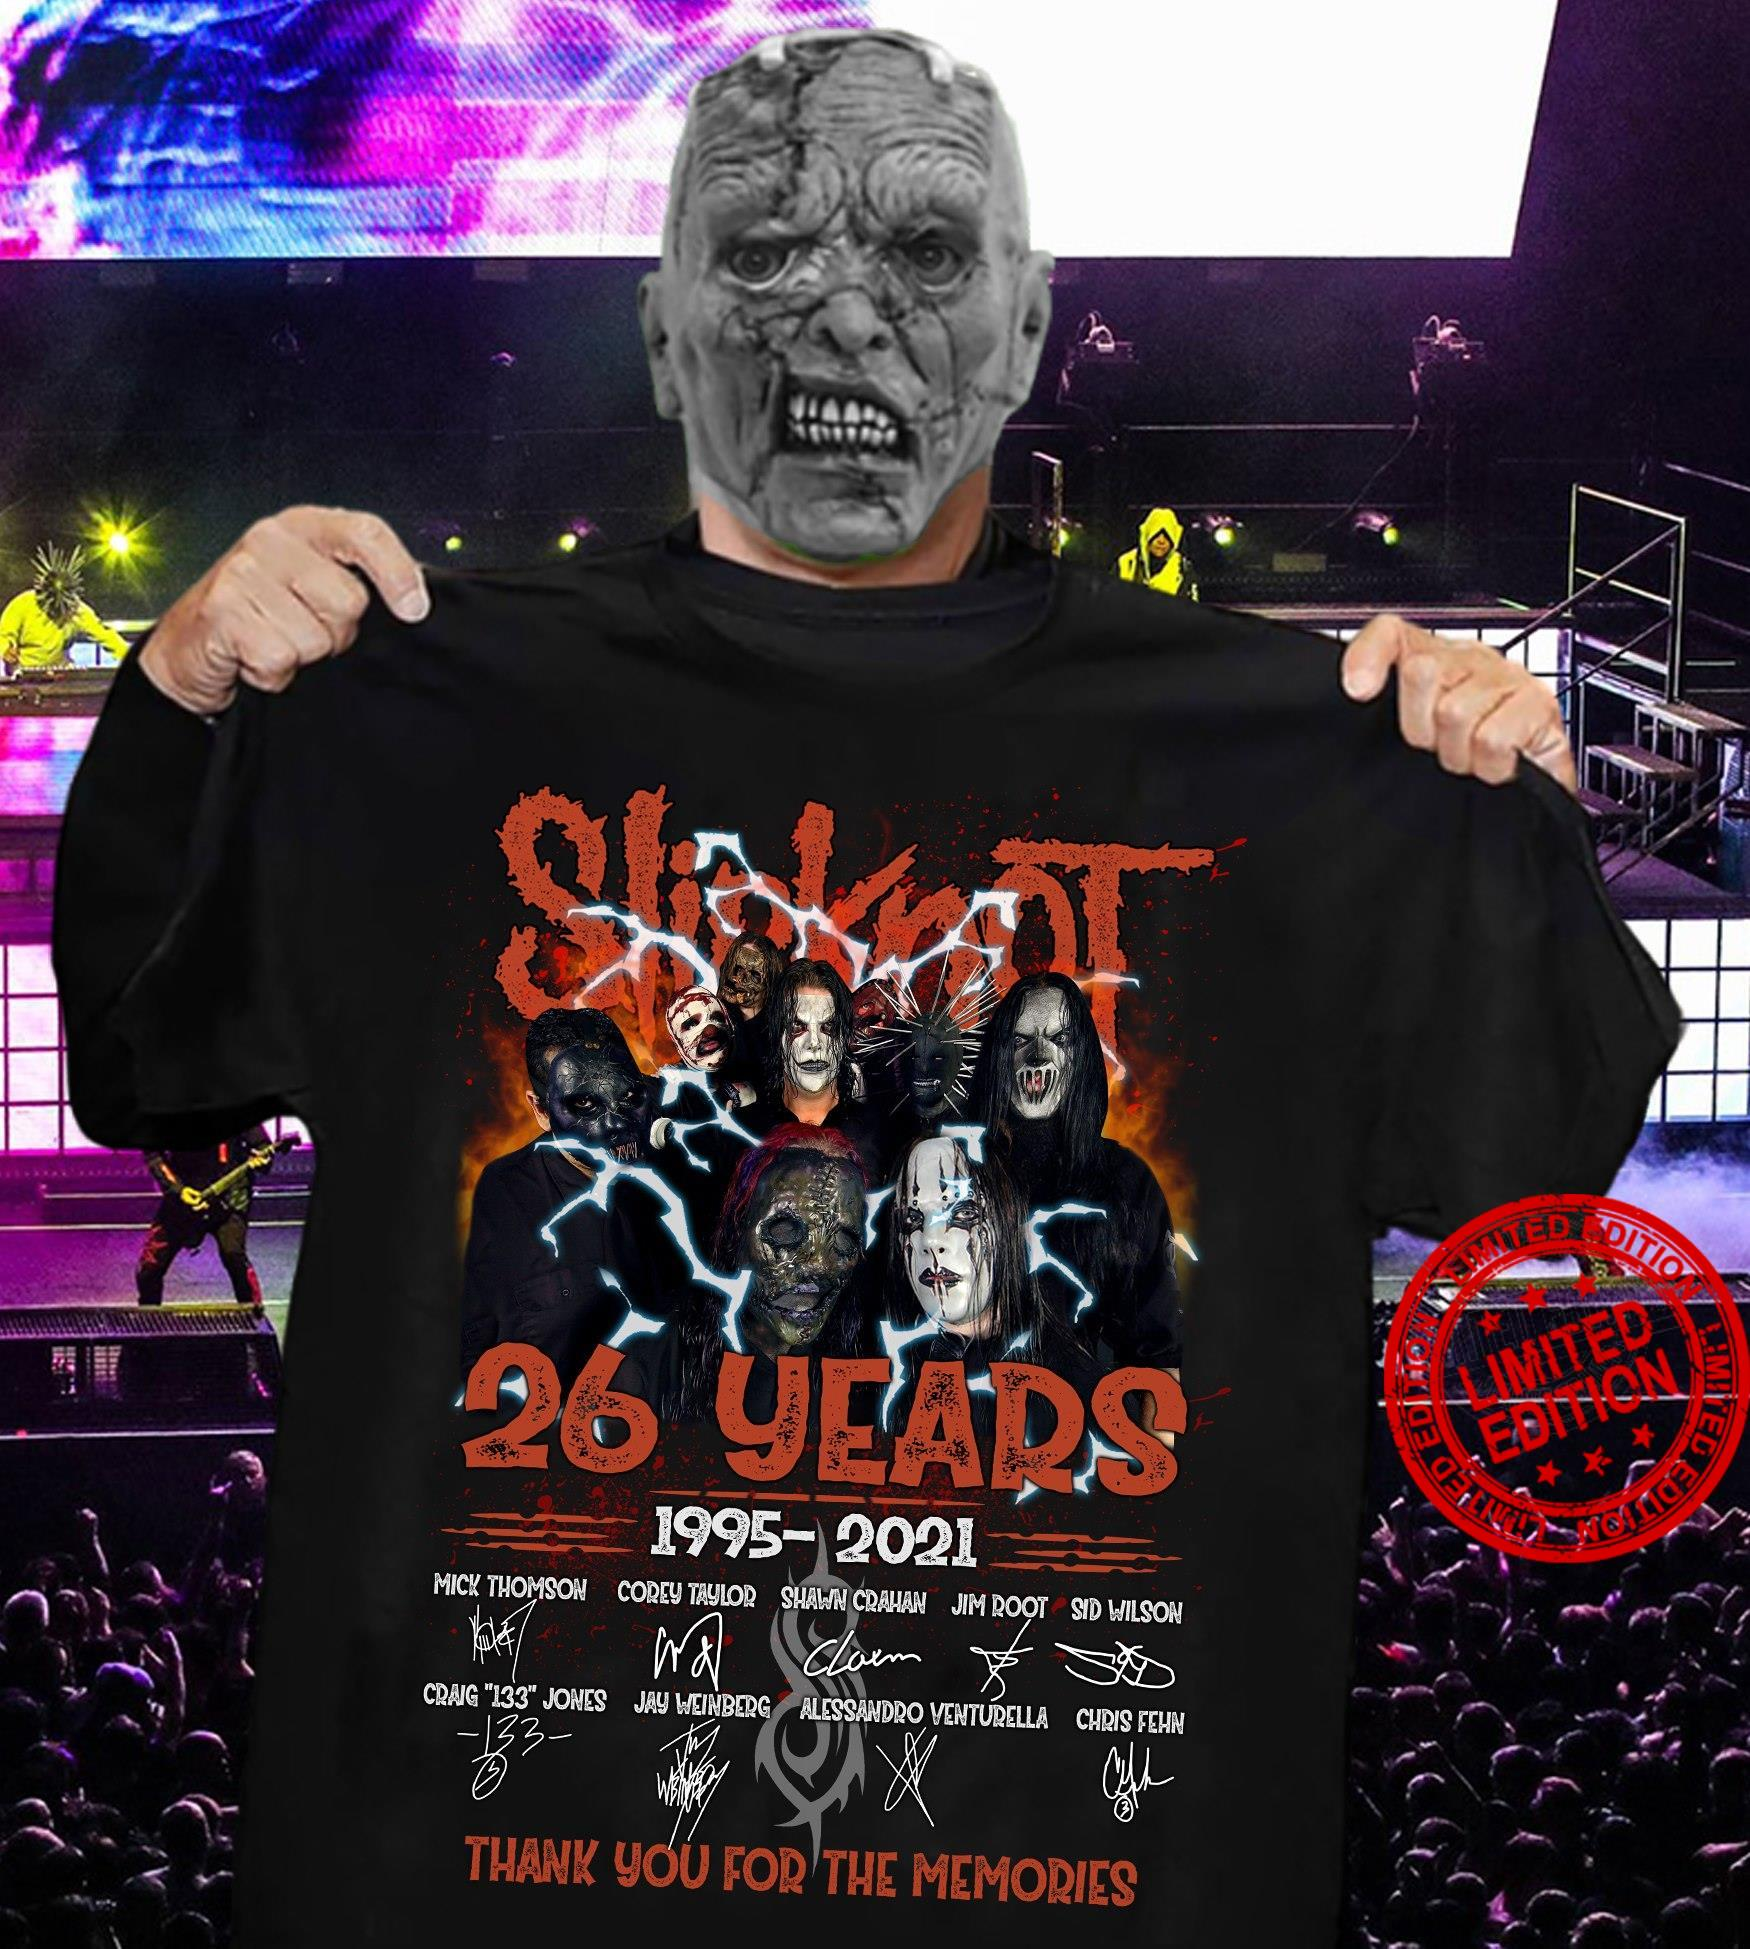 Slipknot 26 Years 1995-2021 Thank You For The Memories Shirt